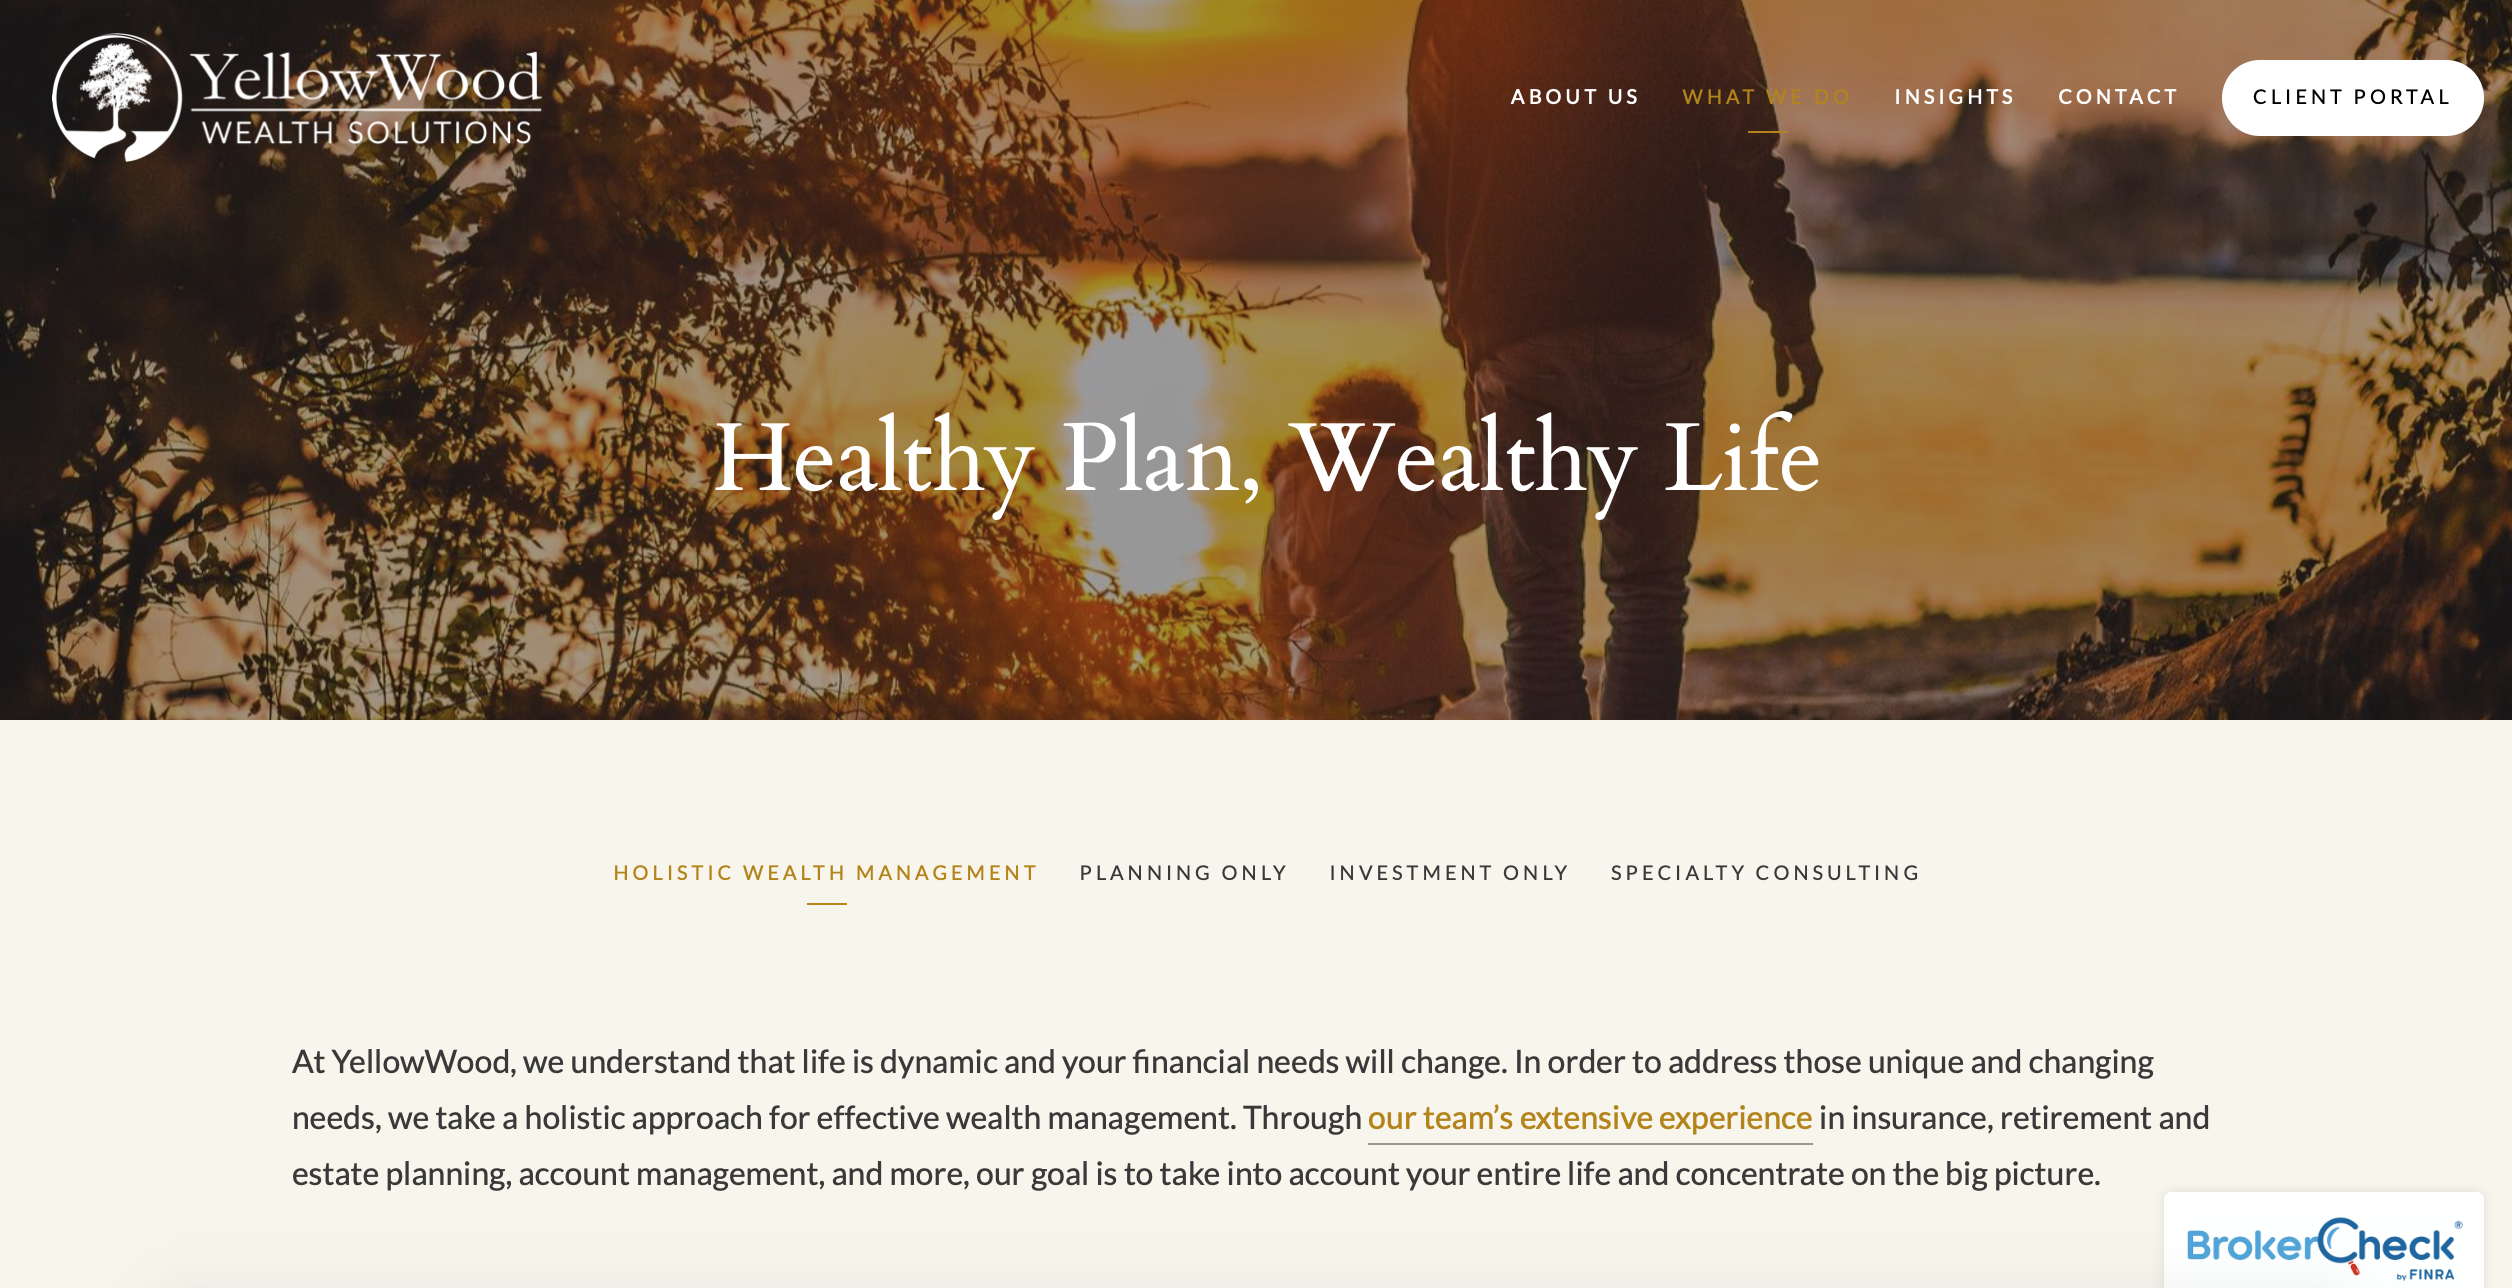 advisor website, yellowwood wealth